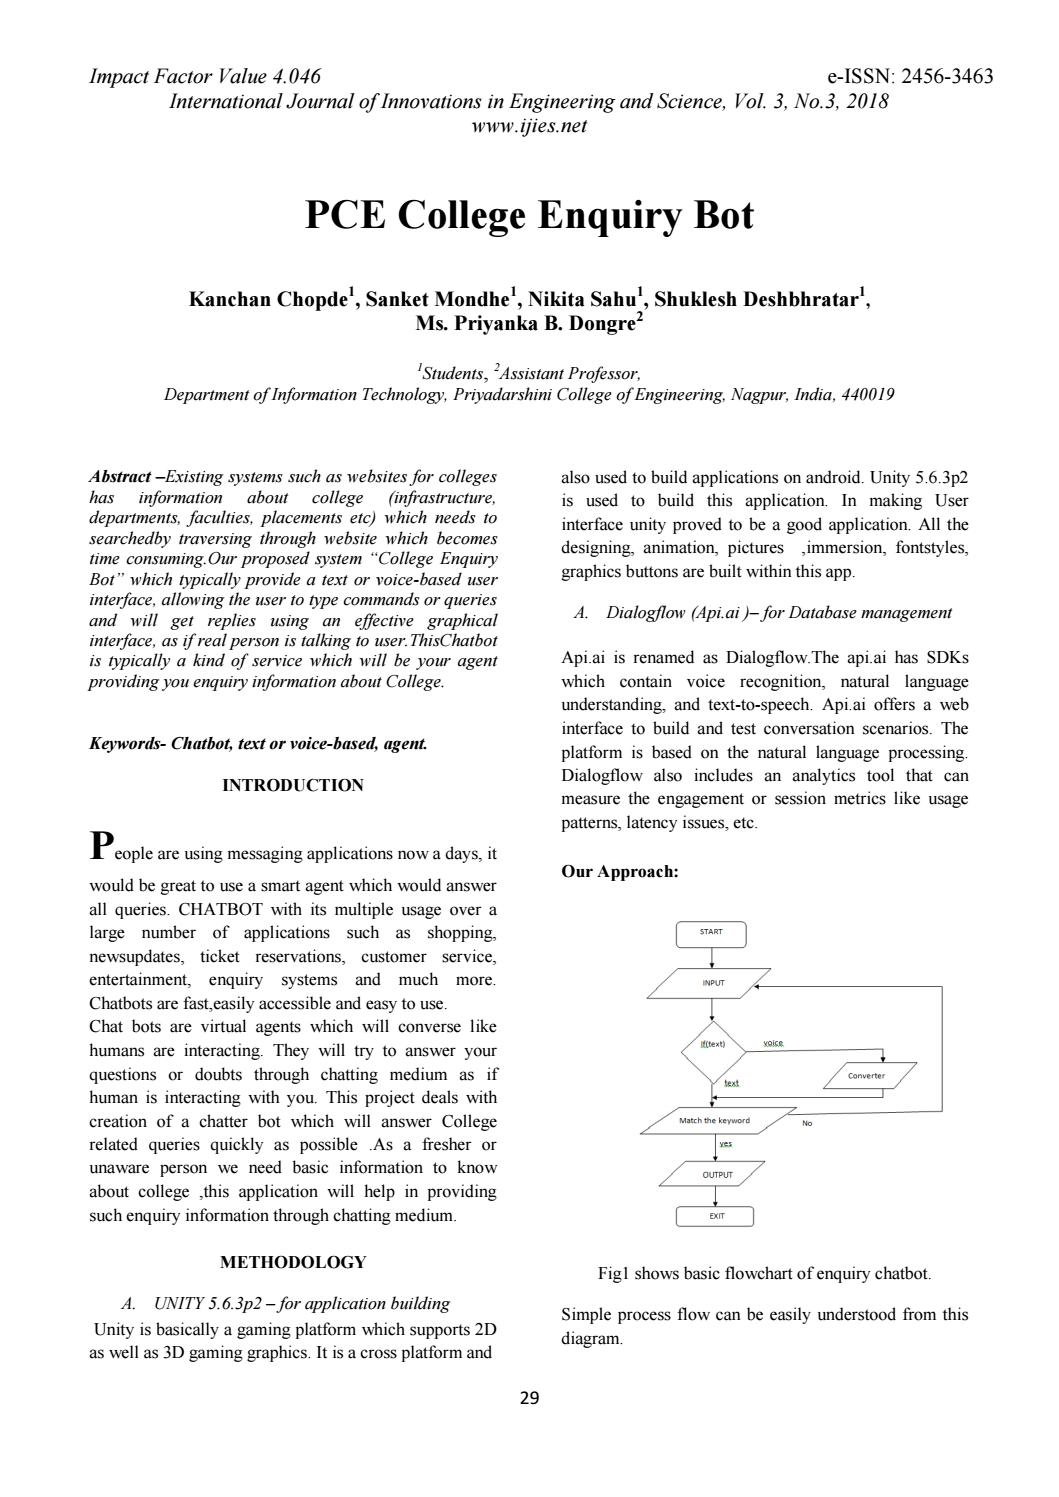 Pce college enquiry bot by International Journal of Innovations in